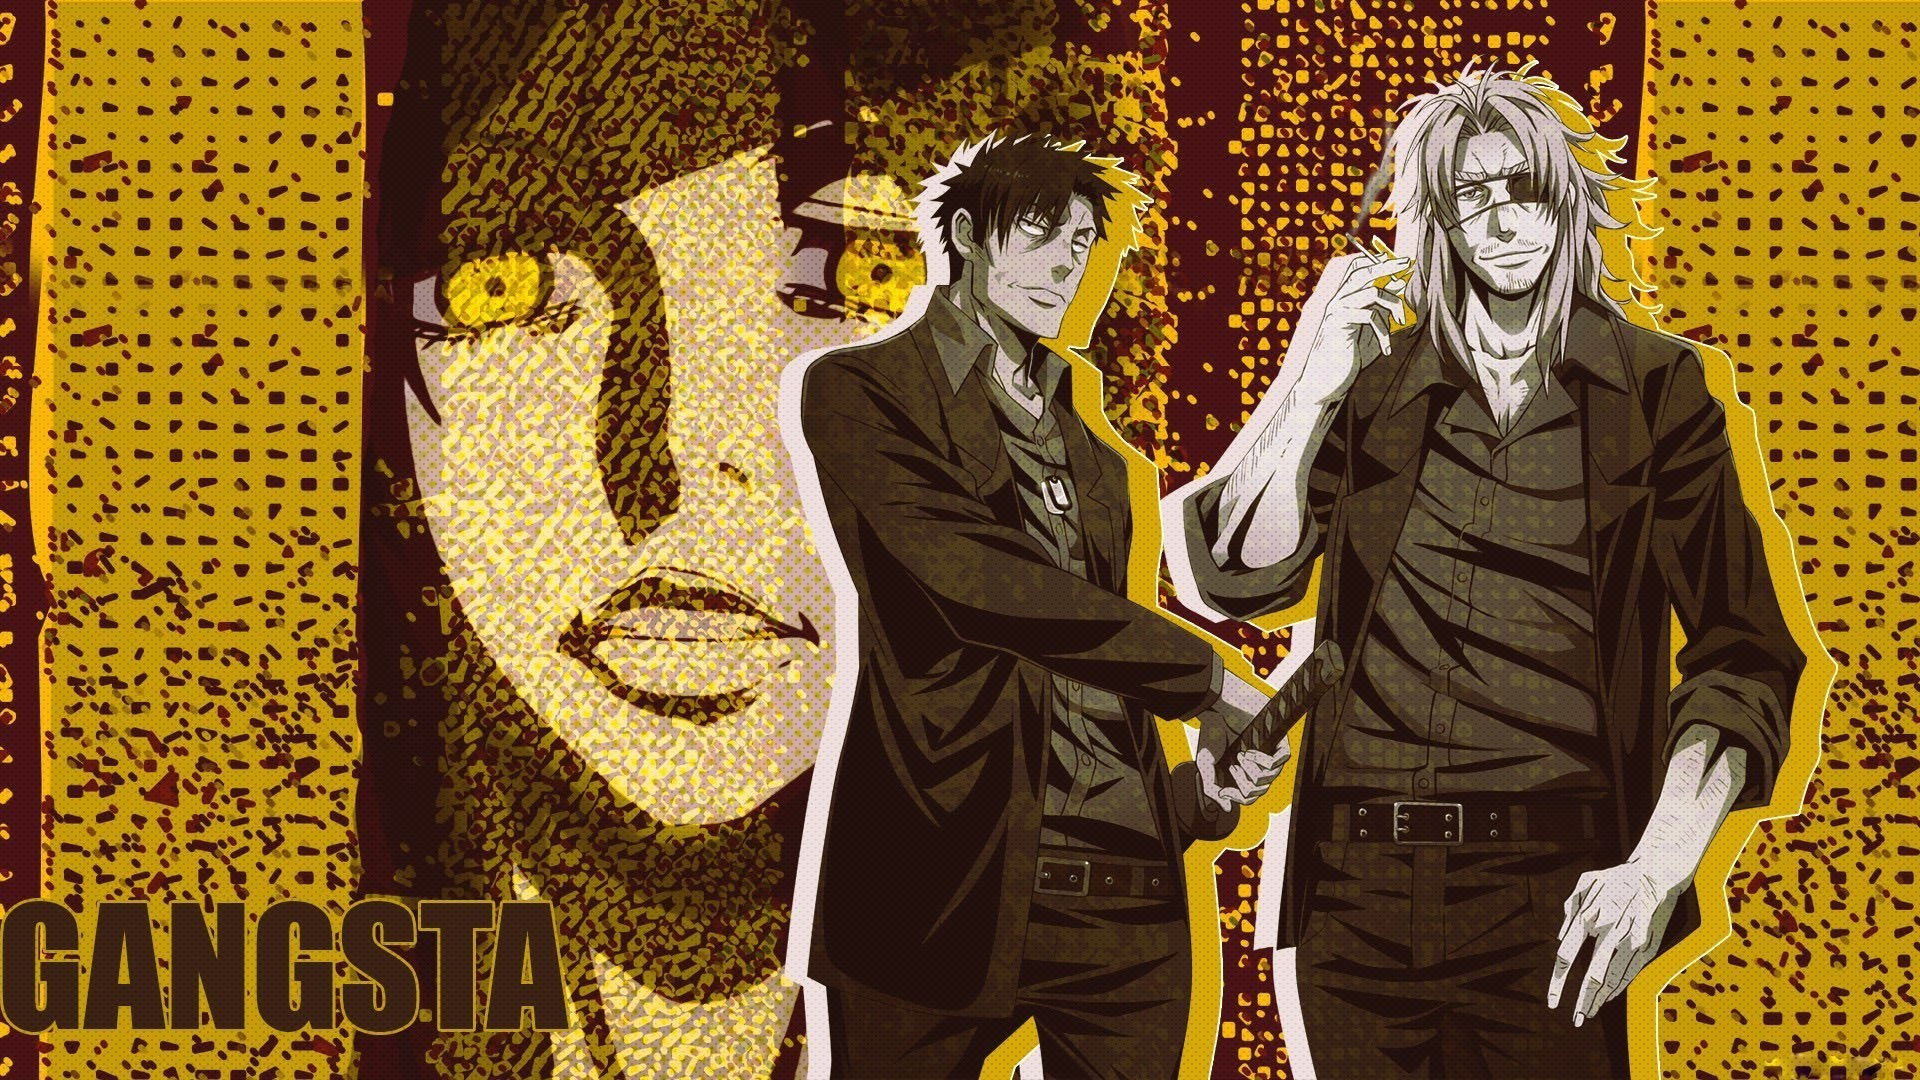 Gangsta anime wallpaper 77 images 1920x1080 anime series gangsta characters males wallpaper 1920x1080 826798 voltagebd Gallery